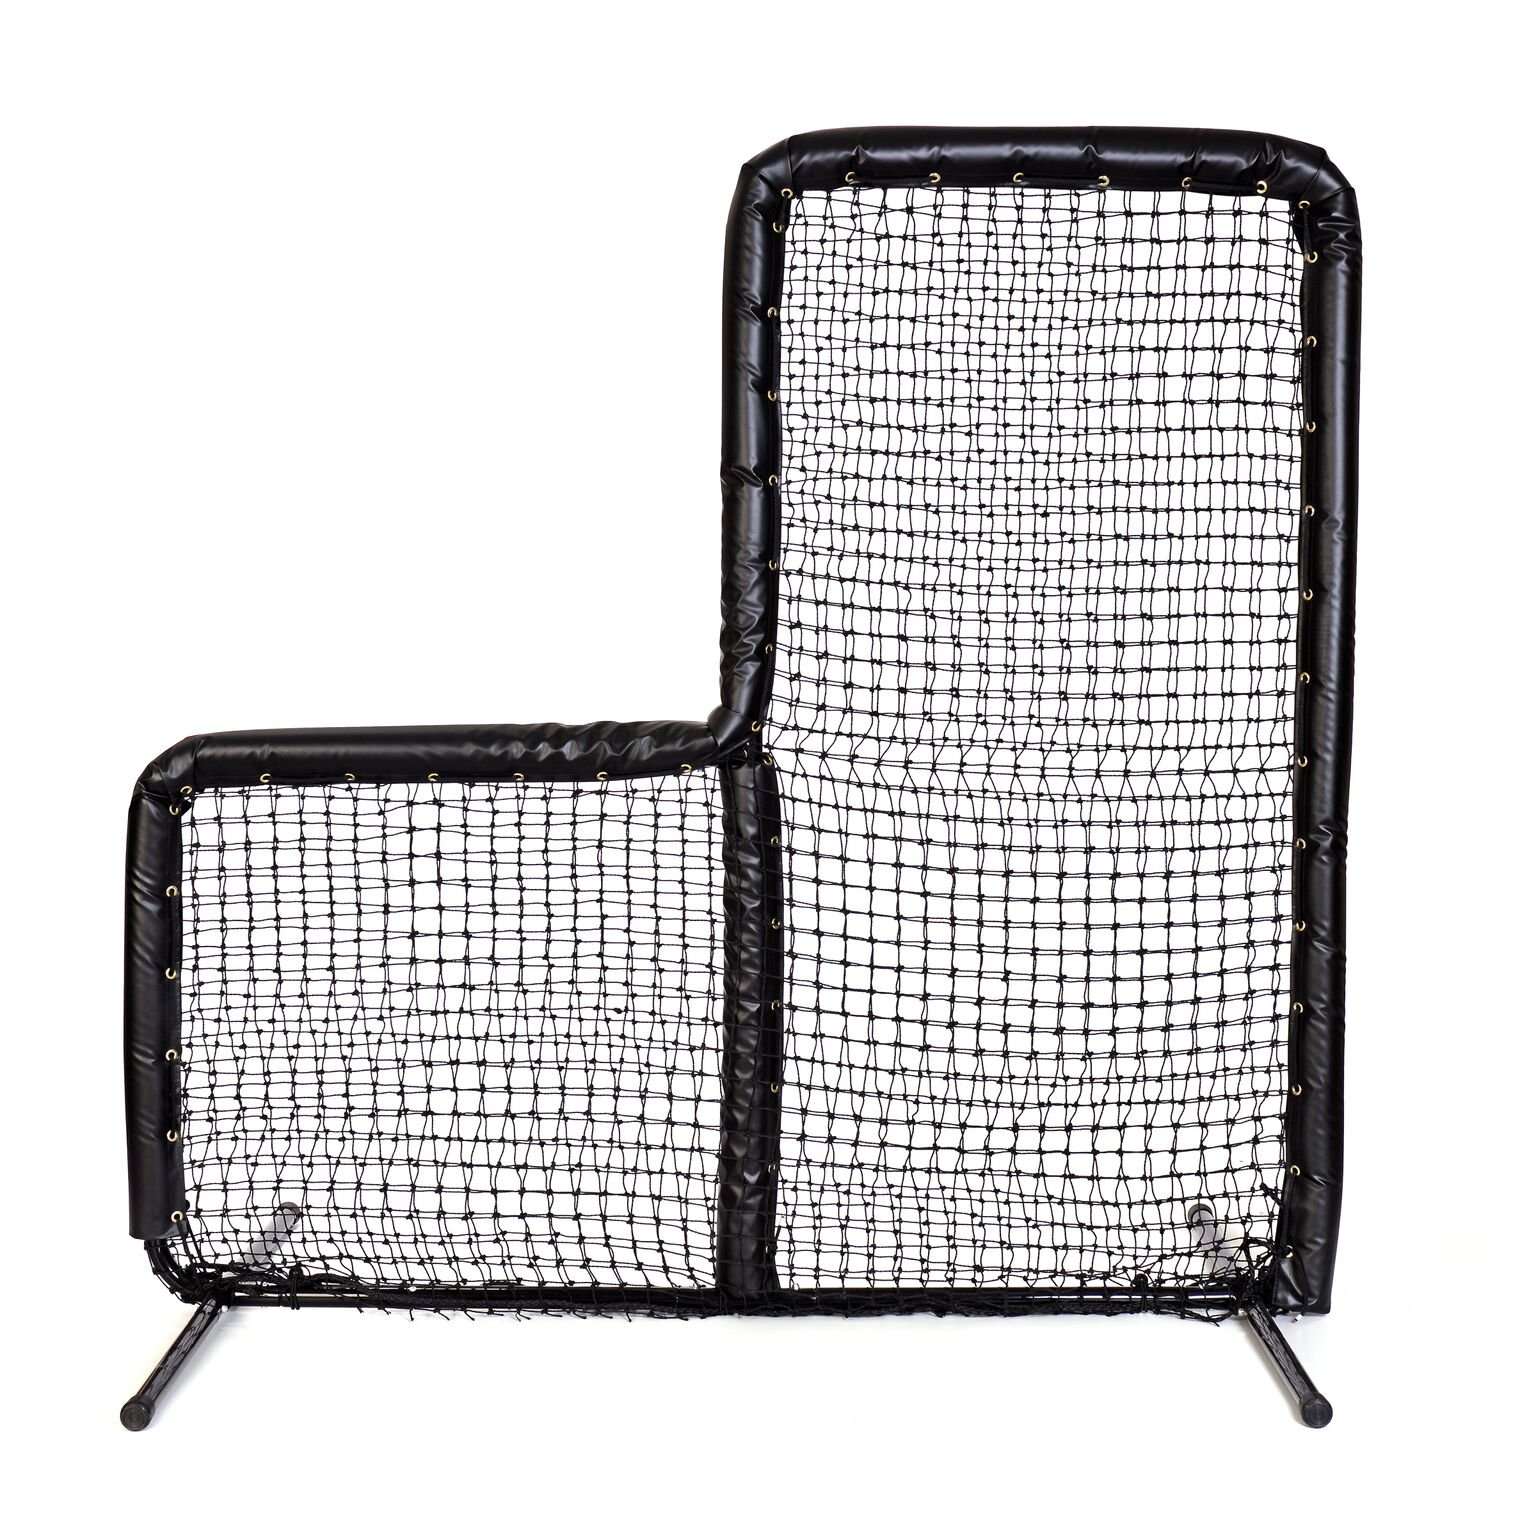 Armor Series Pitching Screen Baseball Softball Practice Net with Screen Bulletz Leg Caps. 7x7 L-Screen Perfect for Baseball and Softball Batting Practice. Choose Padding Color. (Black) by Armor